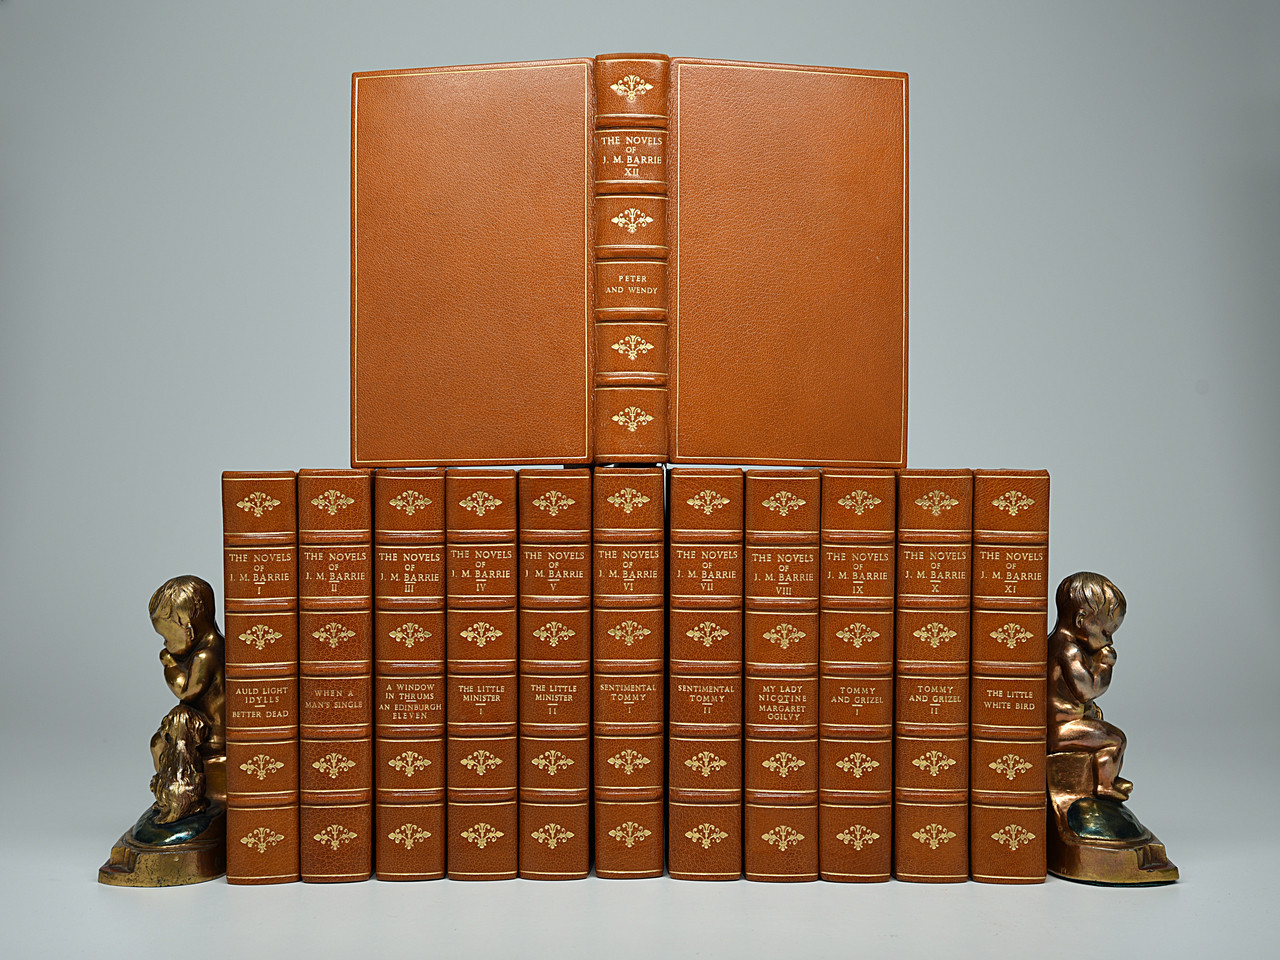 The Novels, Tales & Sketches of J. M. Barrie, 1912, Custom Full Leather Bindings